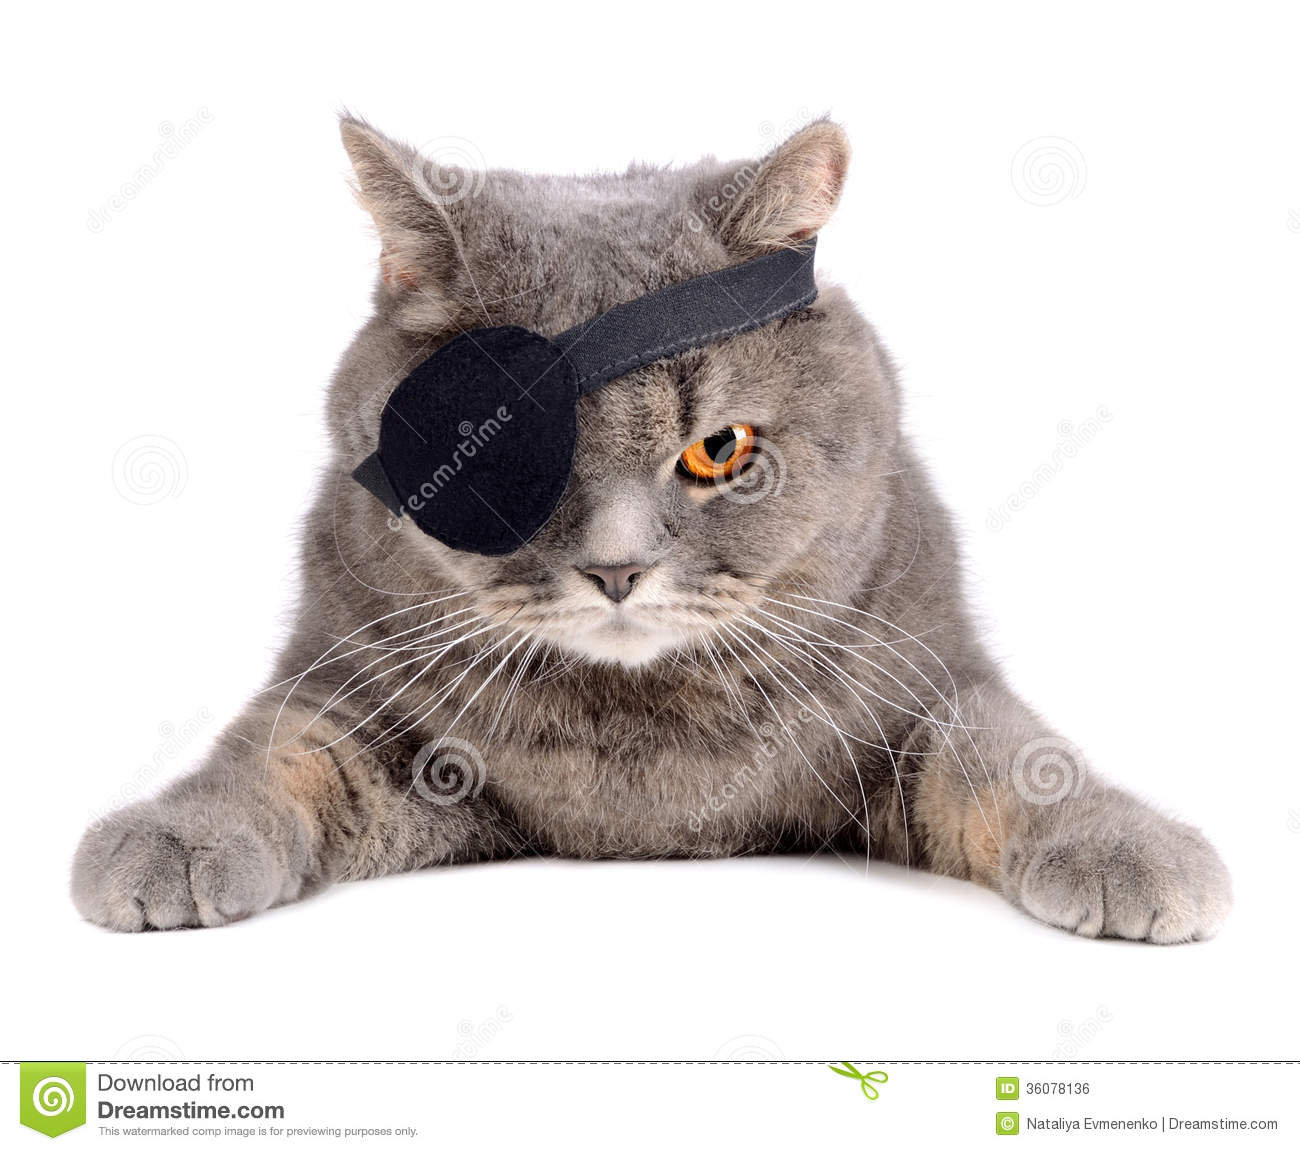 British cat in caribbean pirate costume with eye patch.